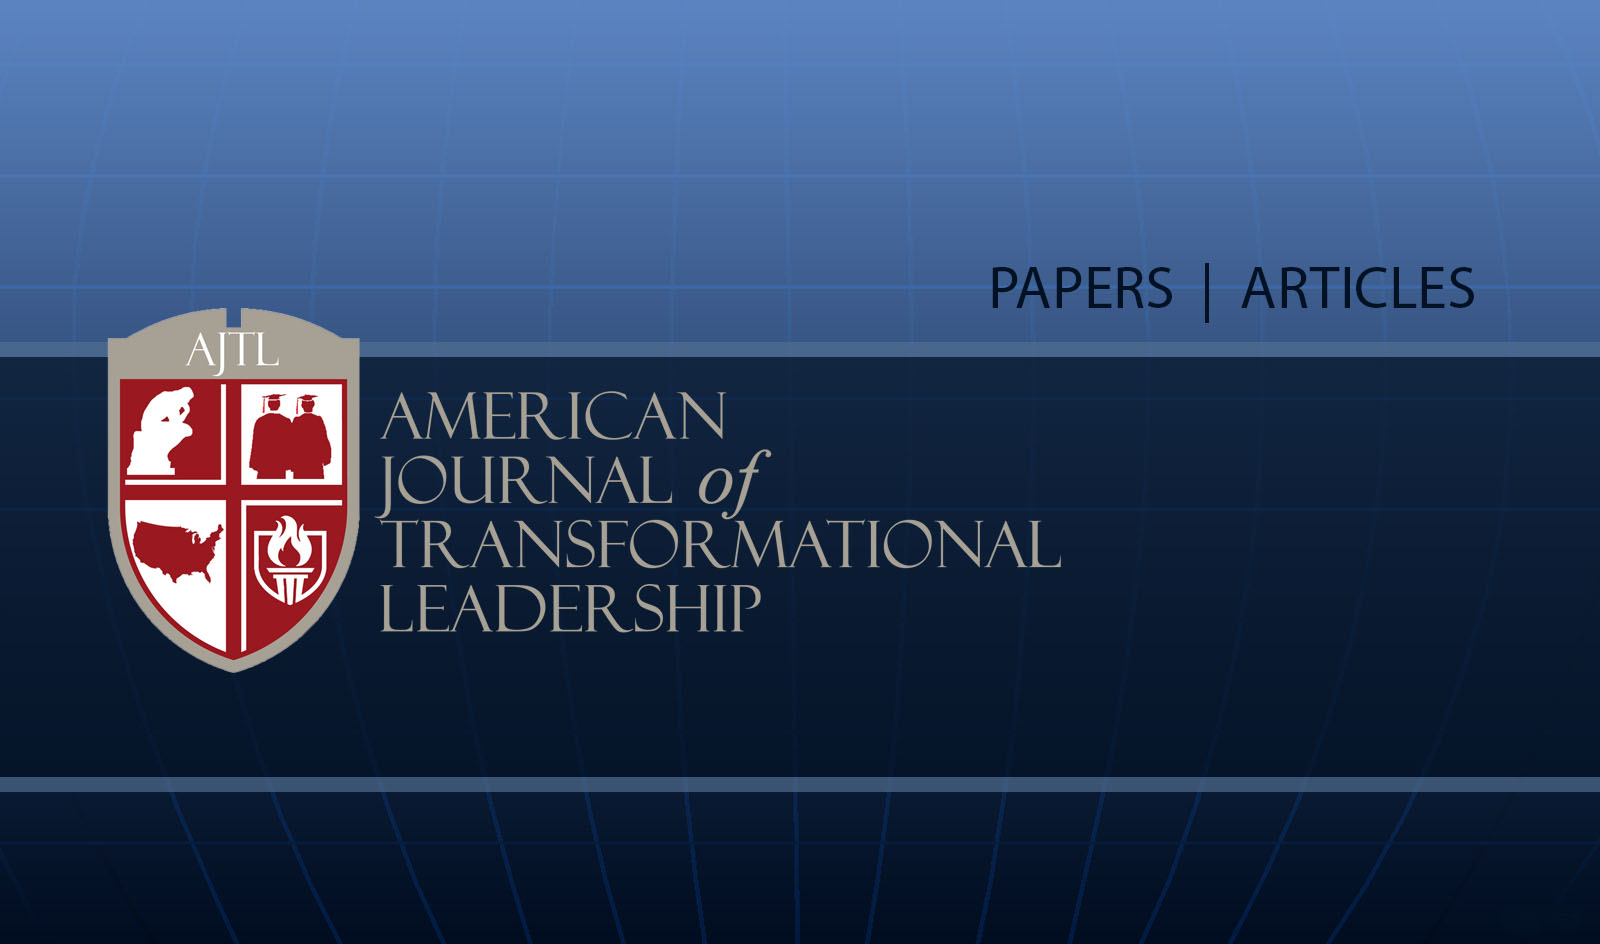 super popular 9349f b0c06 Discourse of transformation in organizational change management – American  Journal of Transformational Leadership